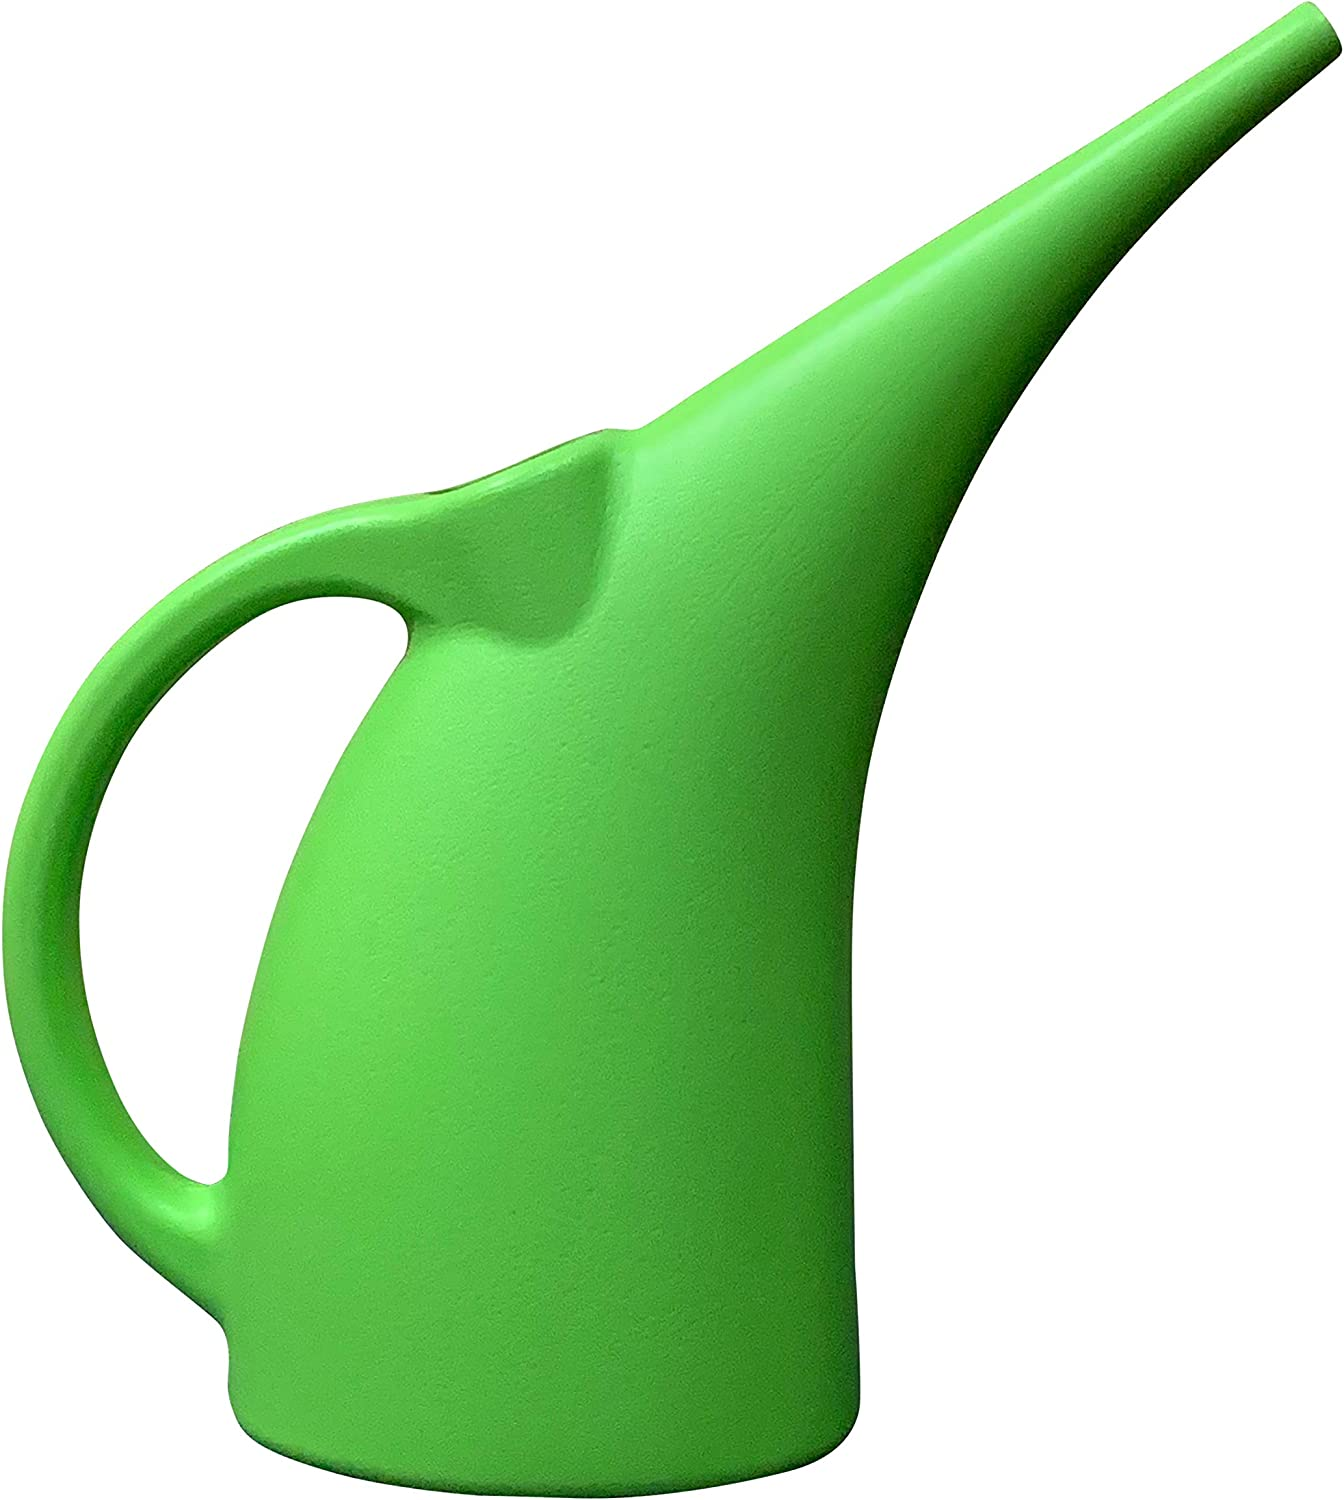 Kool Products Watering Can Indoor | Small Indoor Watering Cans for House Plants | Mini Plant Watering Cans | Plastic Watering Cans (1 Pack) 1/2 Gallon Plant Watering Can BPA Free (Green)